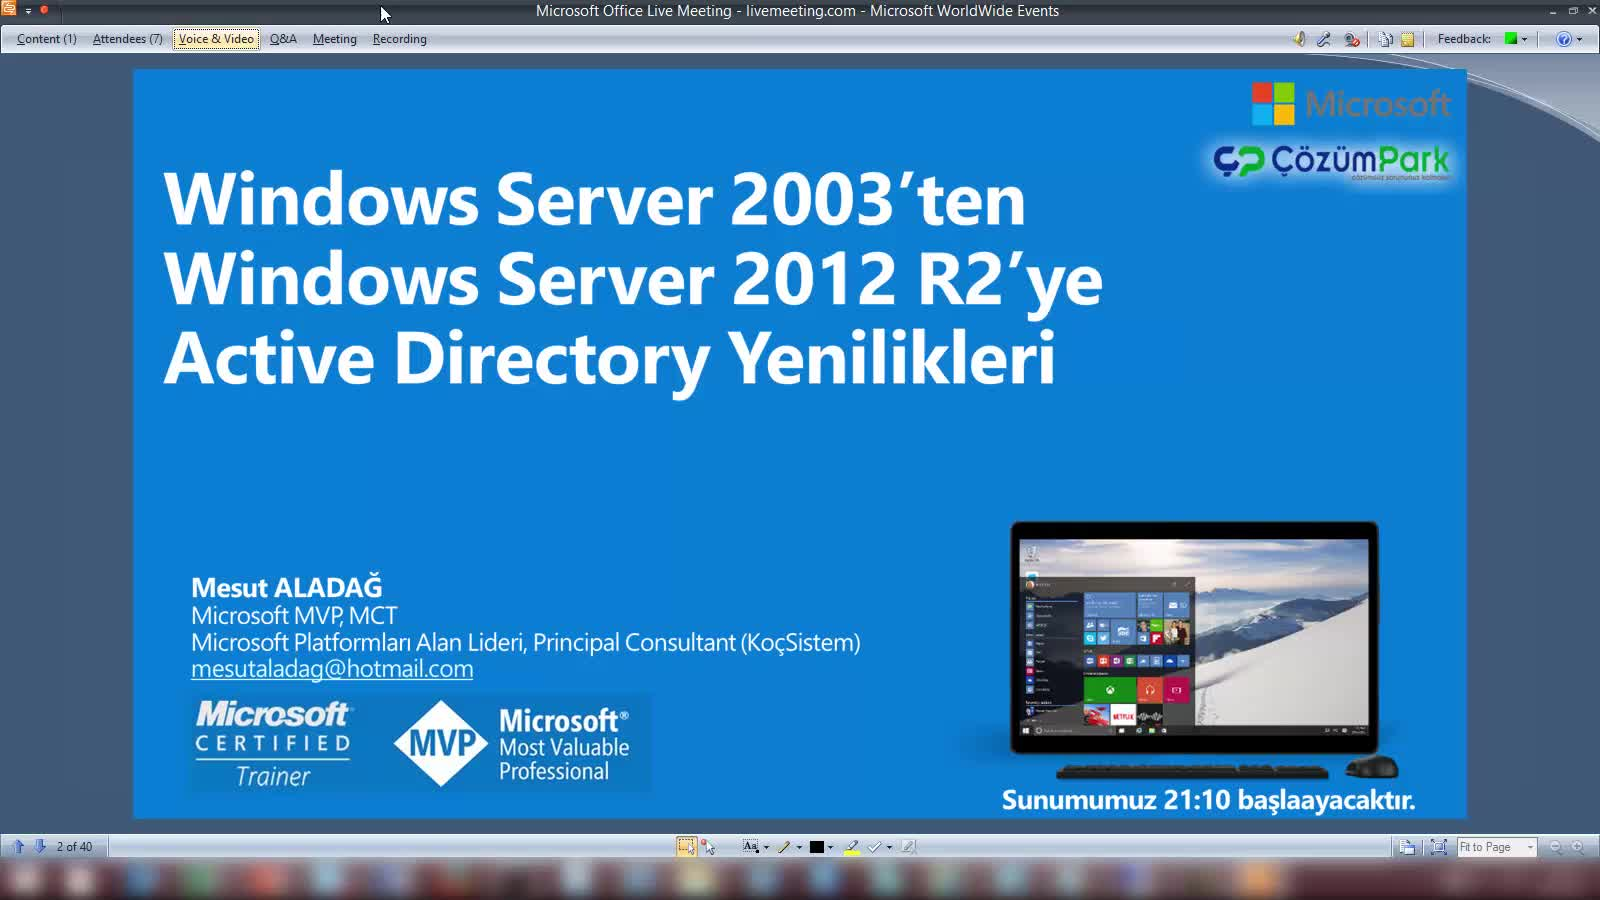 Windows Server 2012 R2 Active Directory Servis Yenilikleri